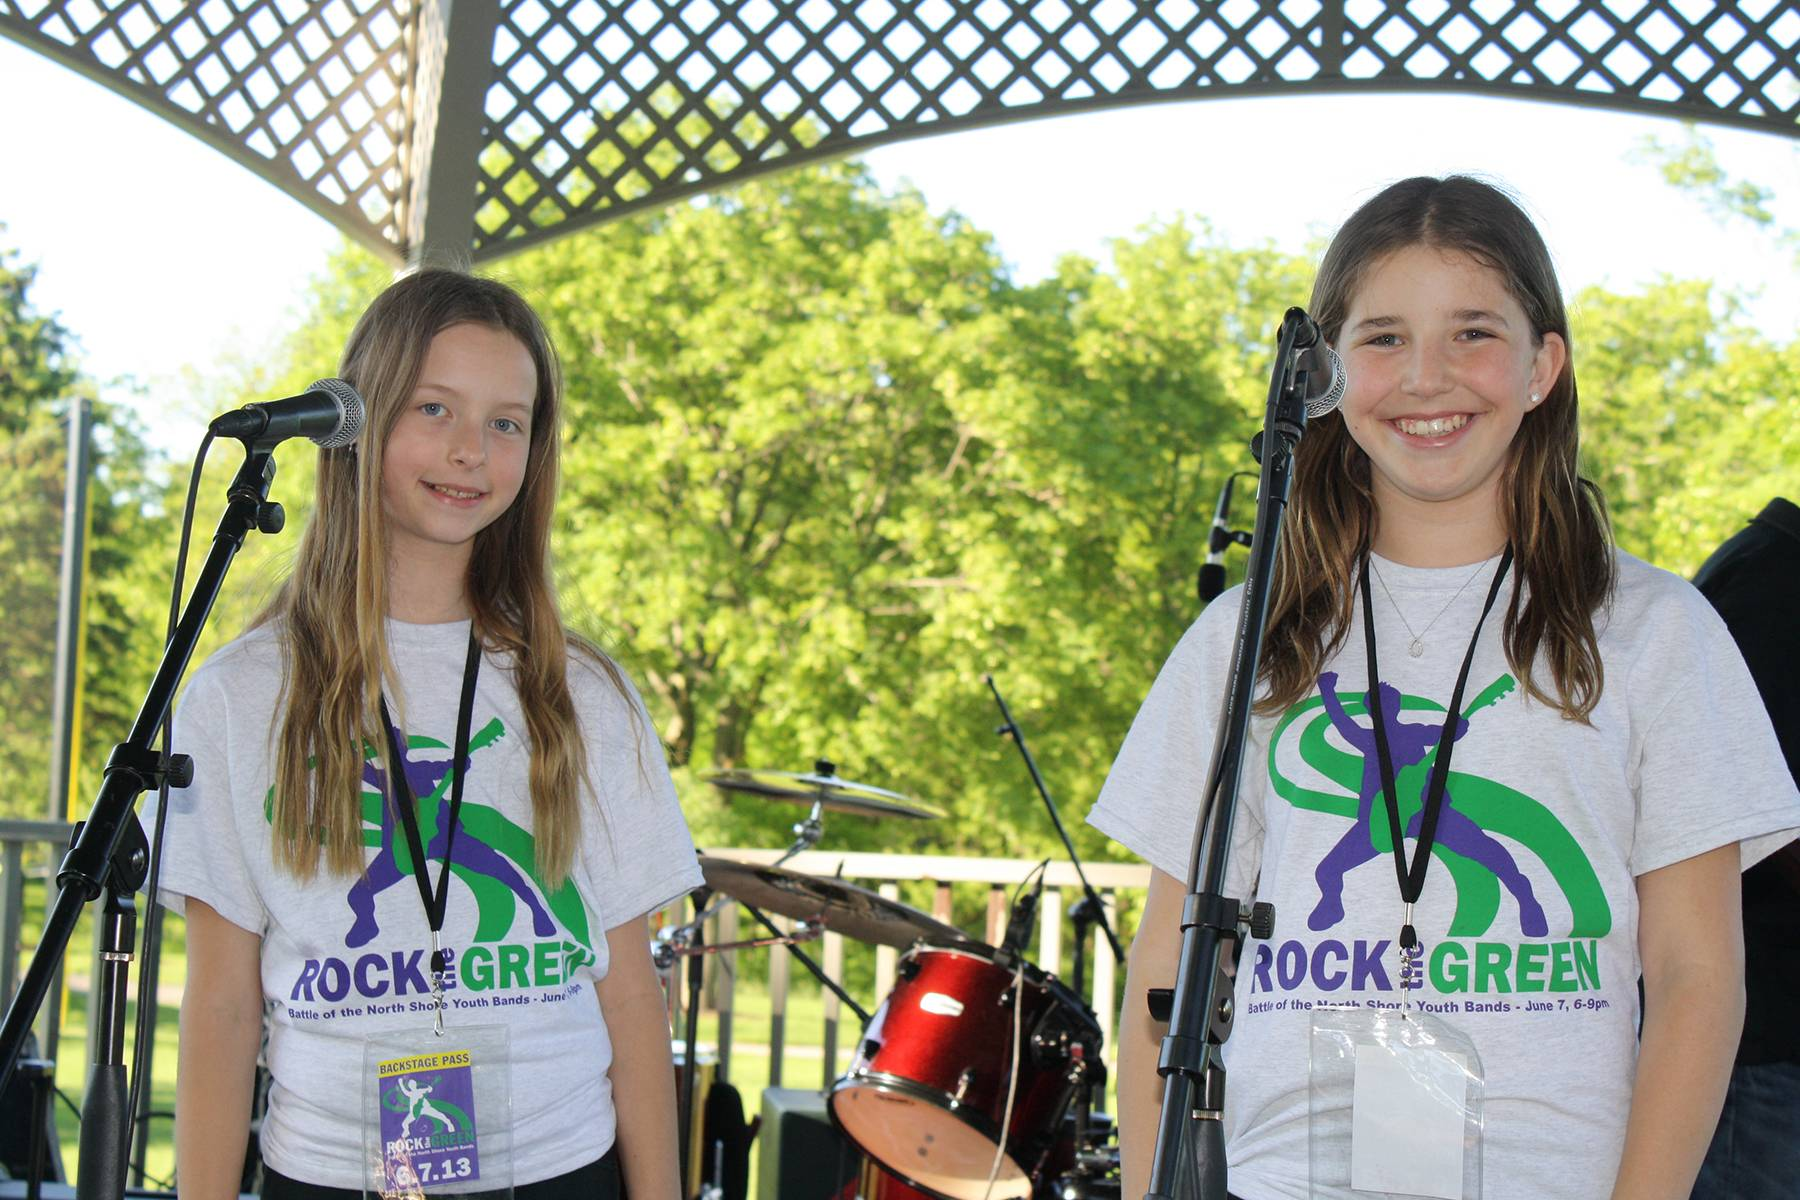 North Shore youth bands are invited to take part in the annual Rock the Green contest in Northbrook.Northbrook Park District